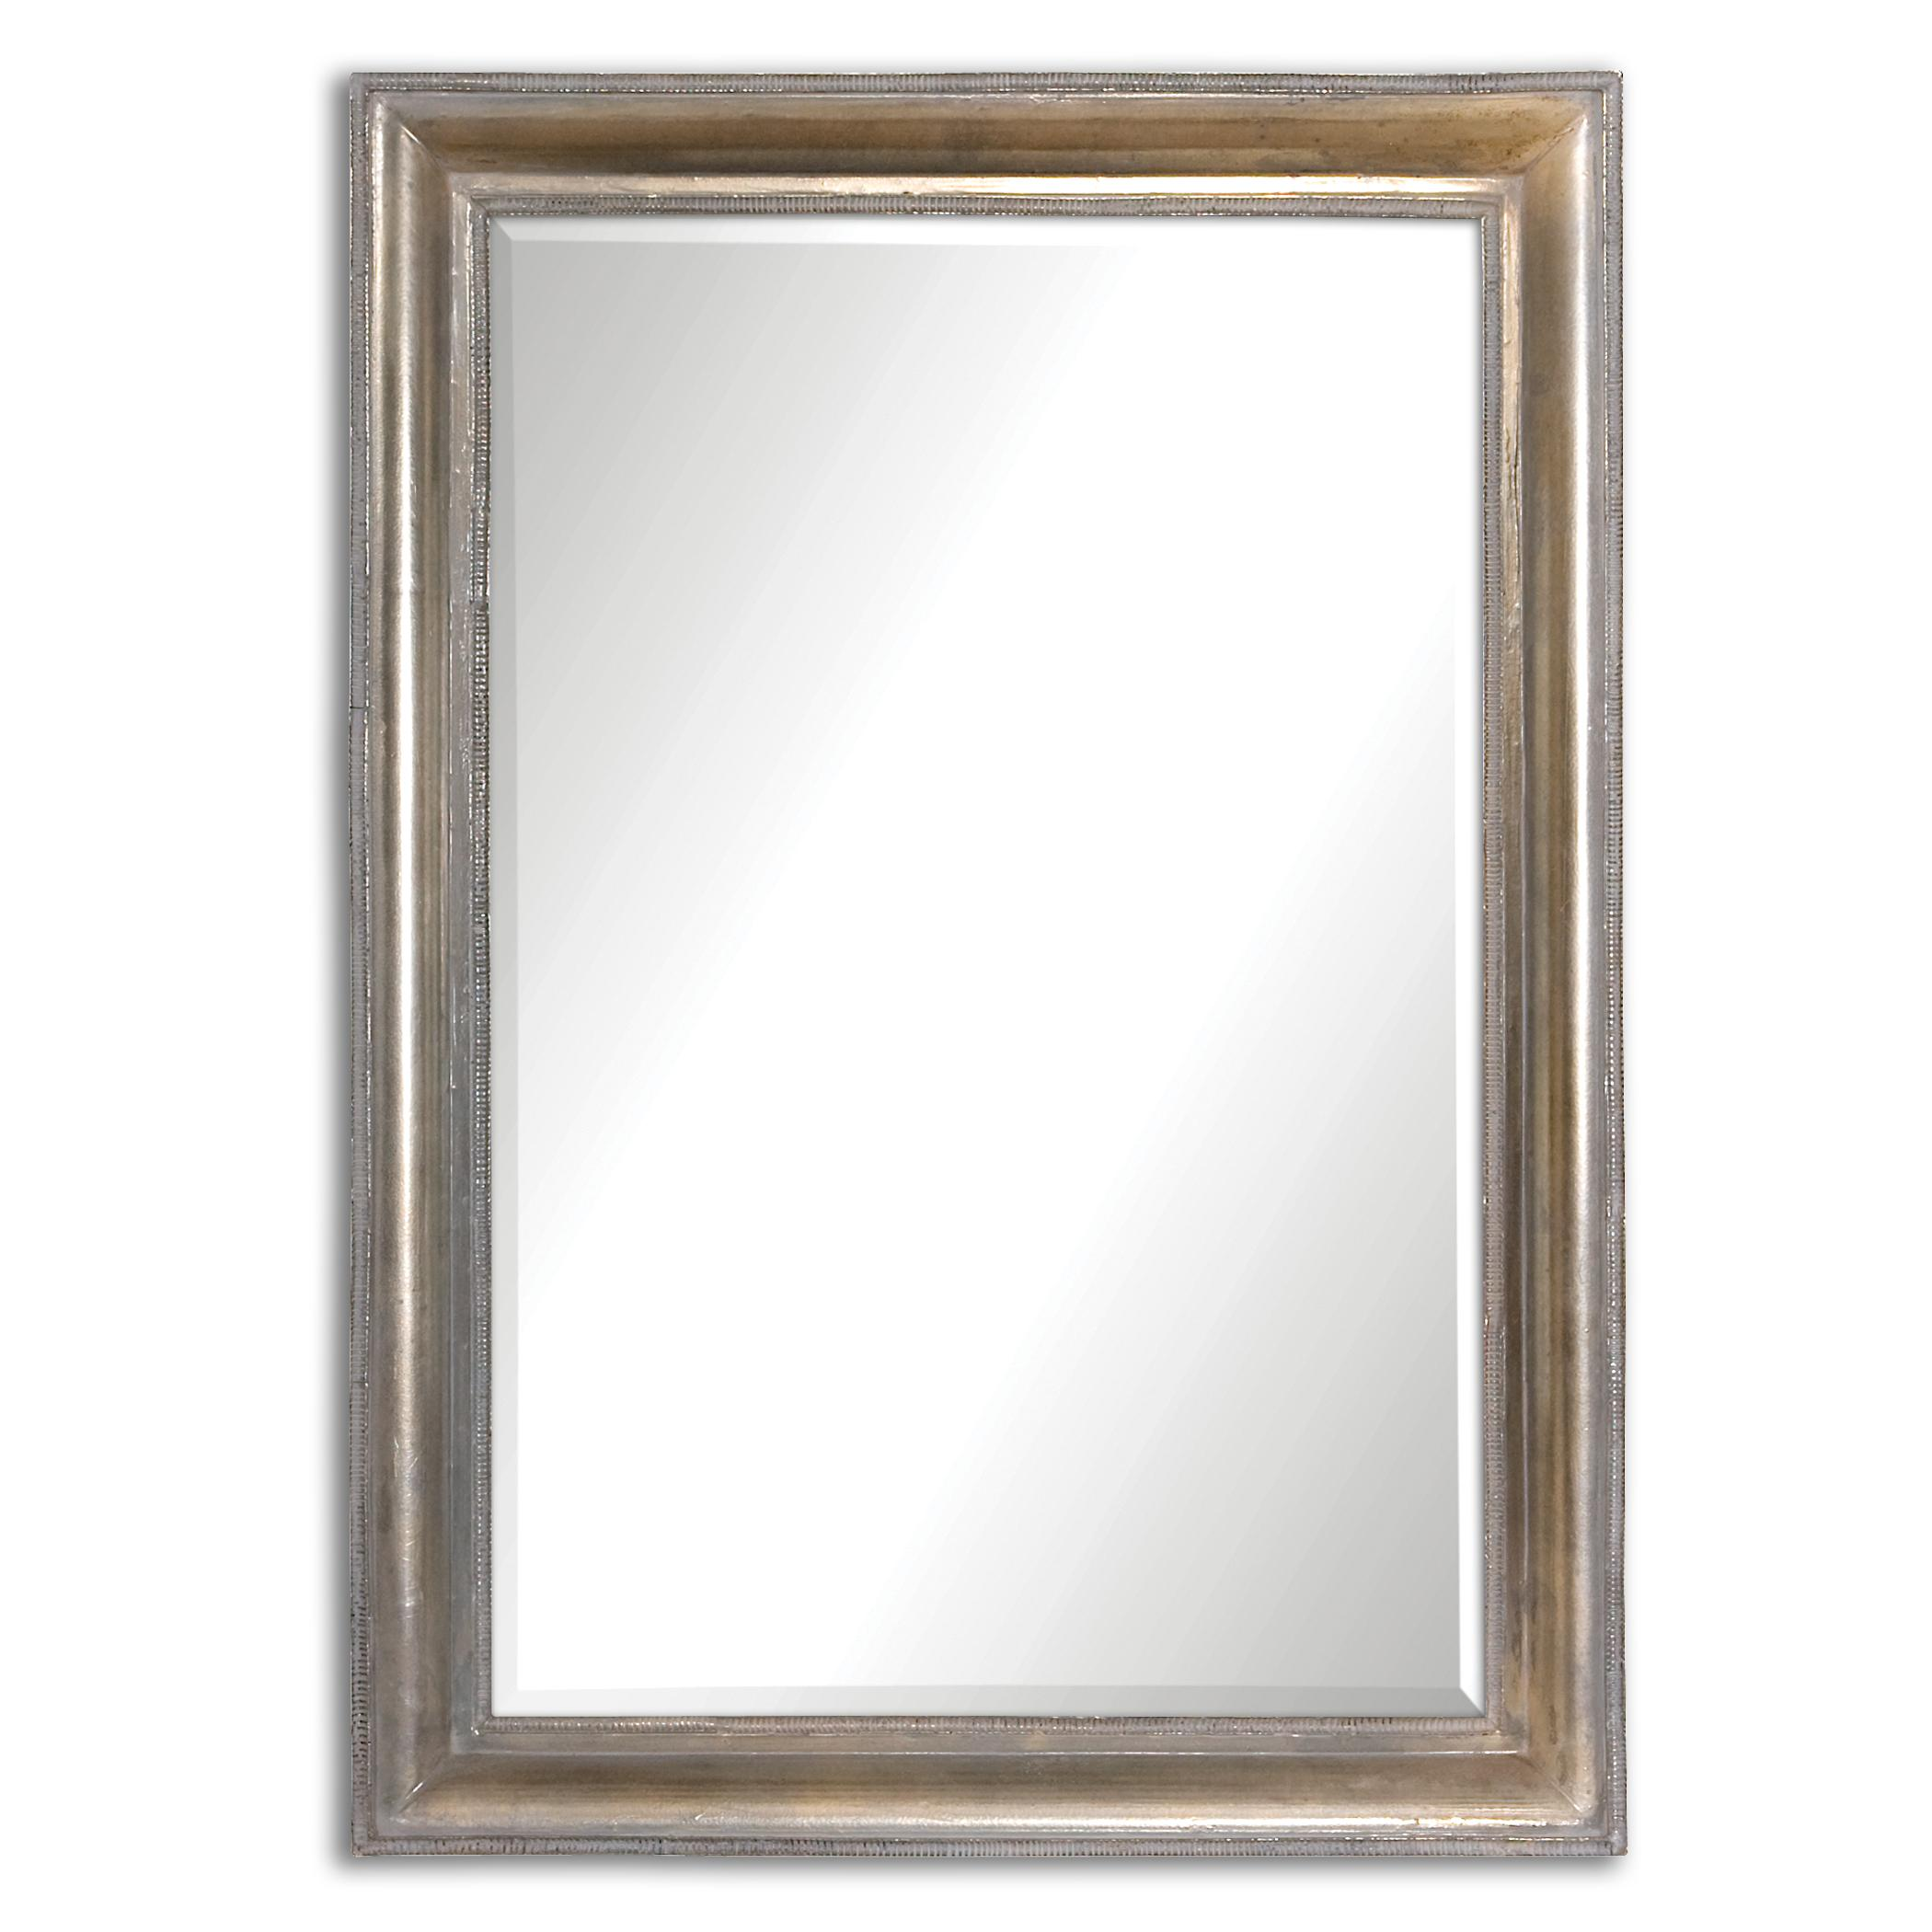 Uttermost Mirrors Avelina Oxidized Silver Mirror - Item Number: 12895